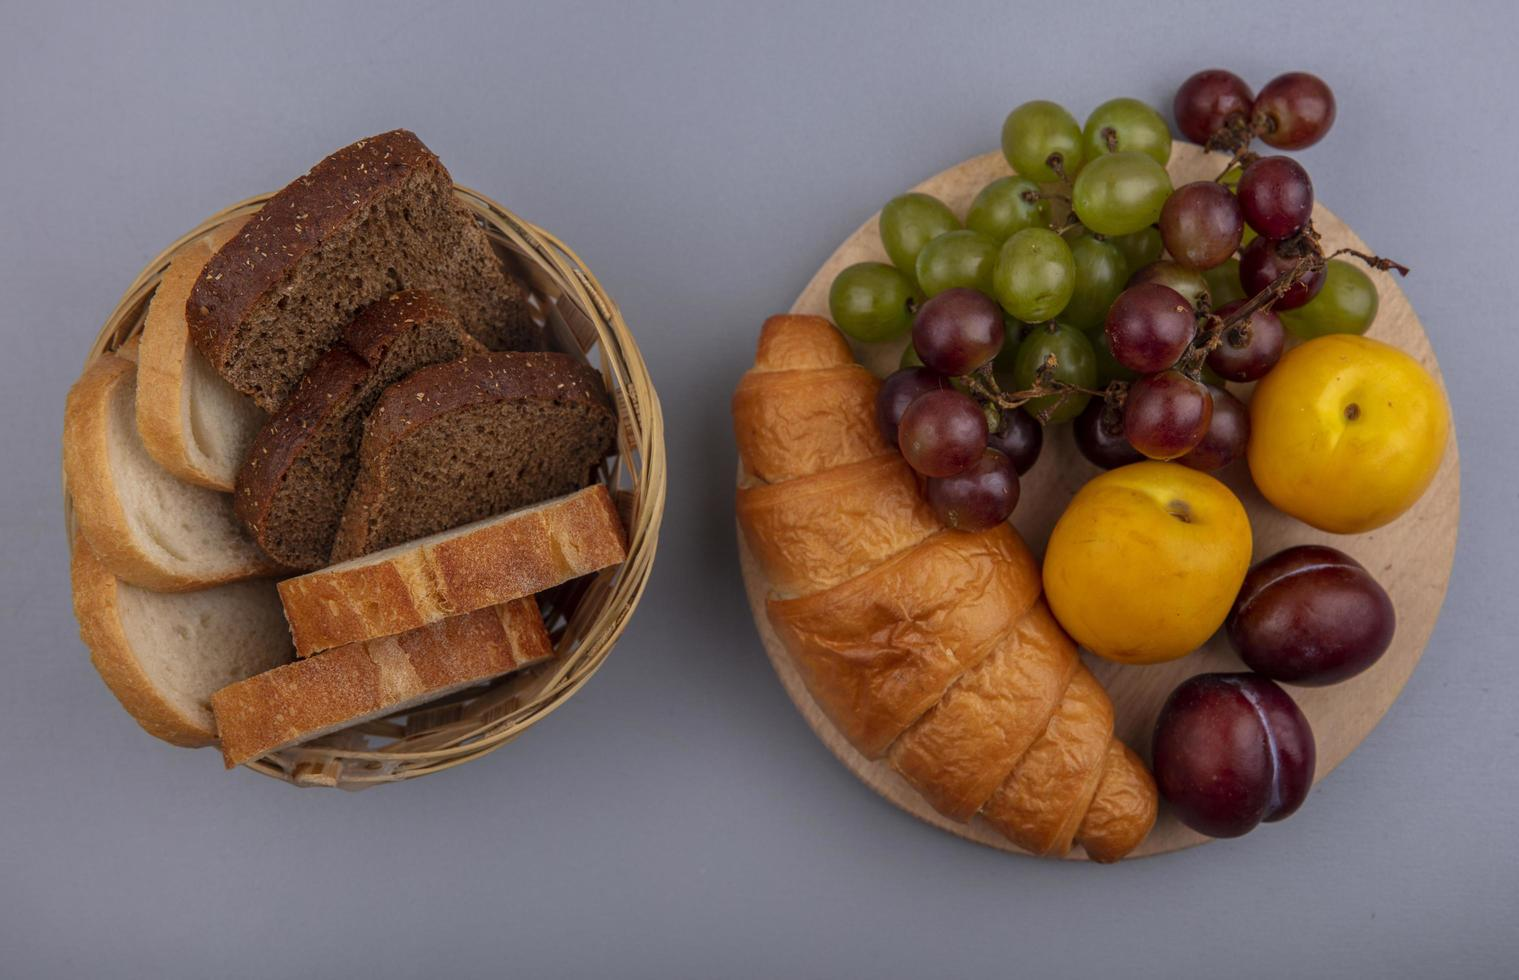 Assorted fruit and bread on neutral background photo